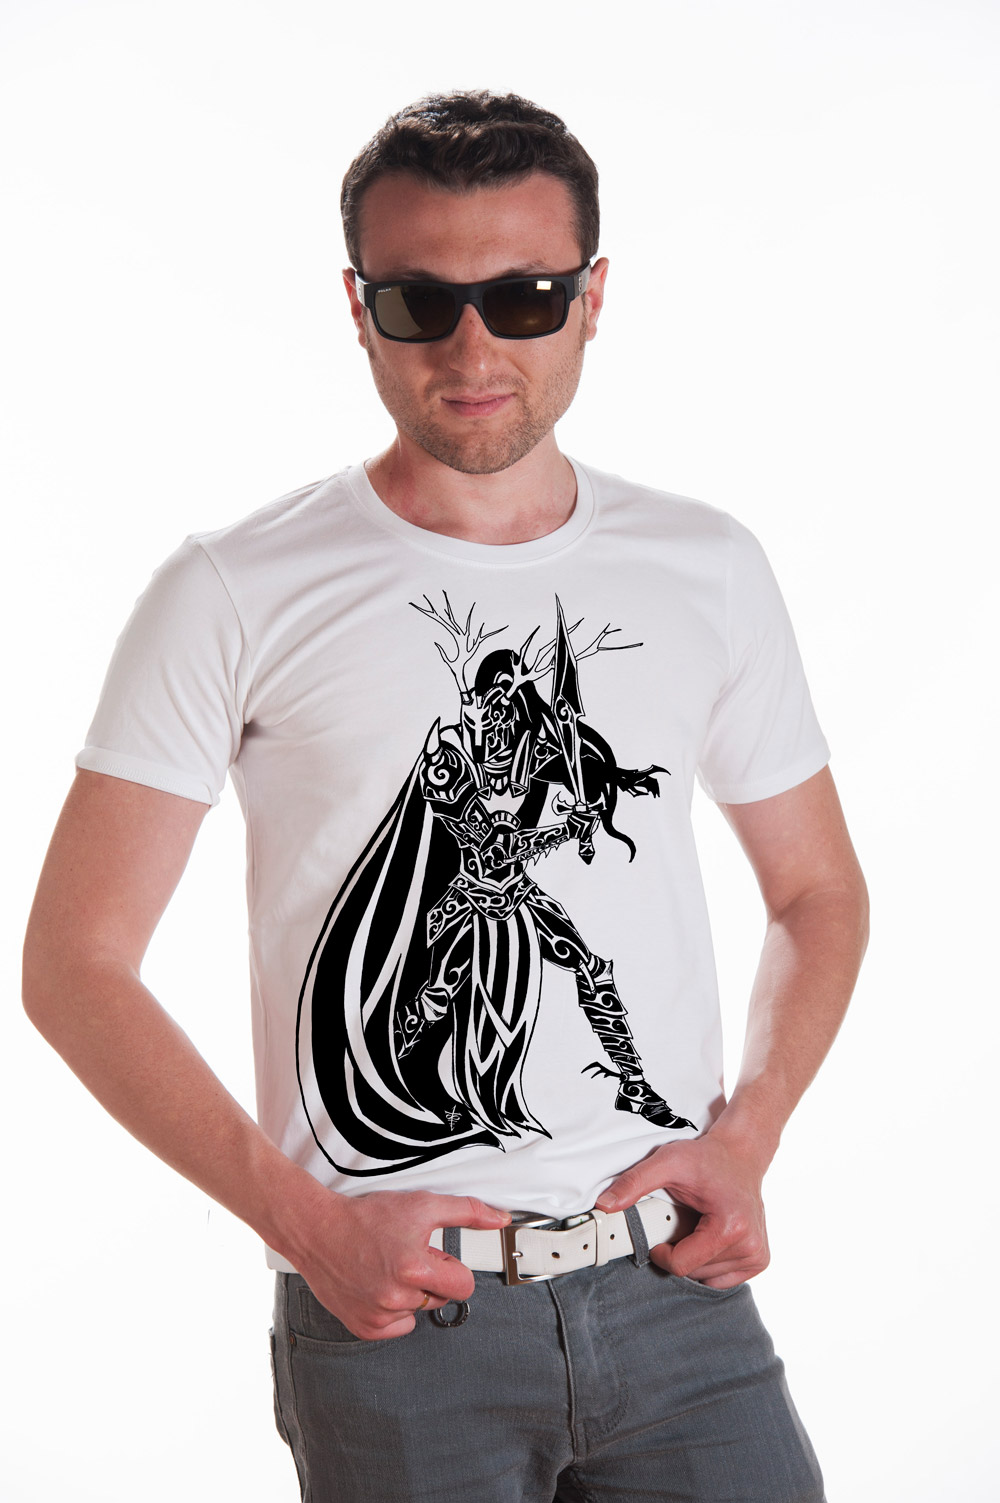 The Dark Knight Printed T shirt | Norse Mythology Tee | Runic Tshirt | Unisex Norse Shirt